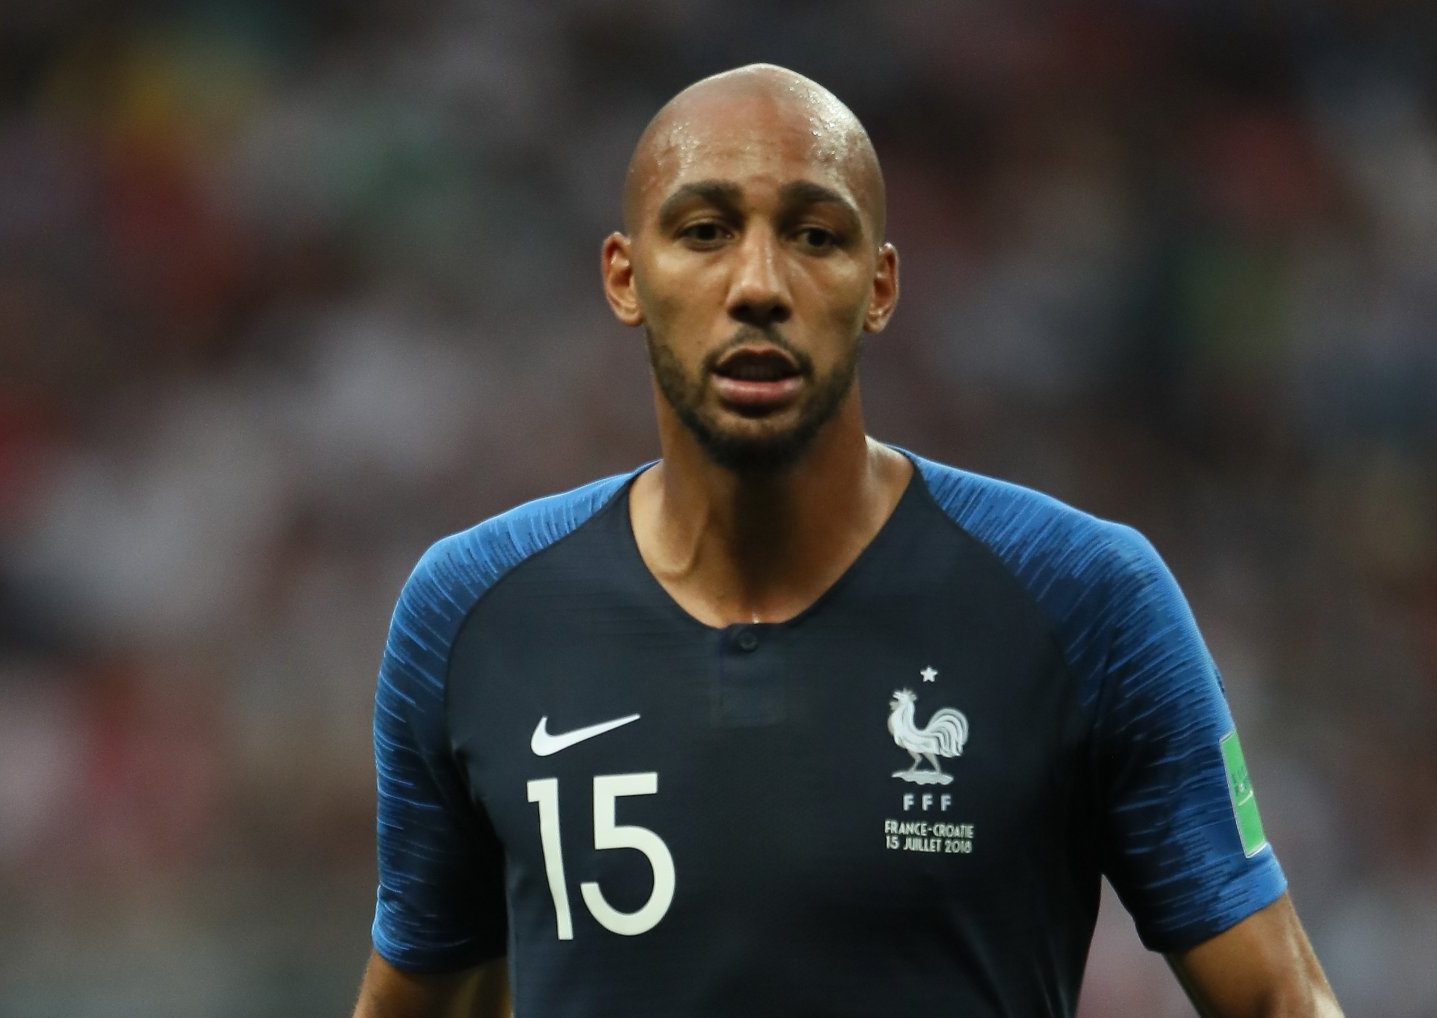 Unai Emery open to Arsenal signing Steven N'Zonzi before transfer deadline